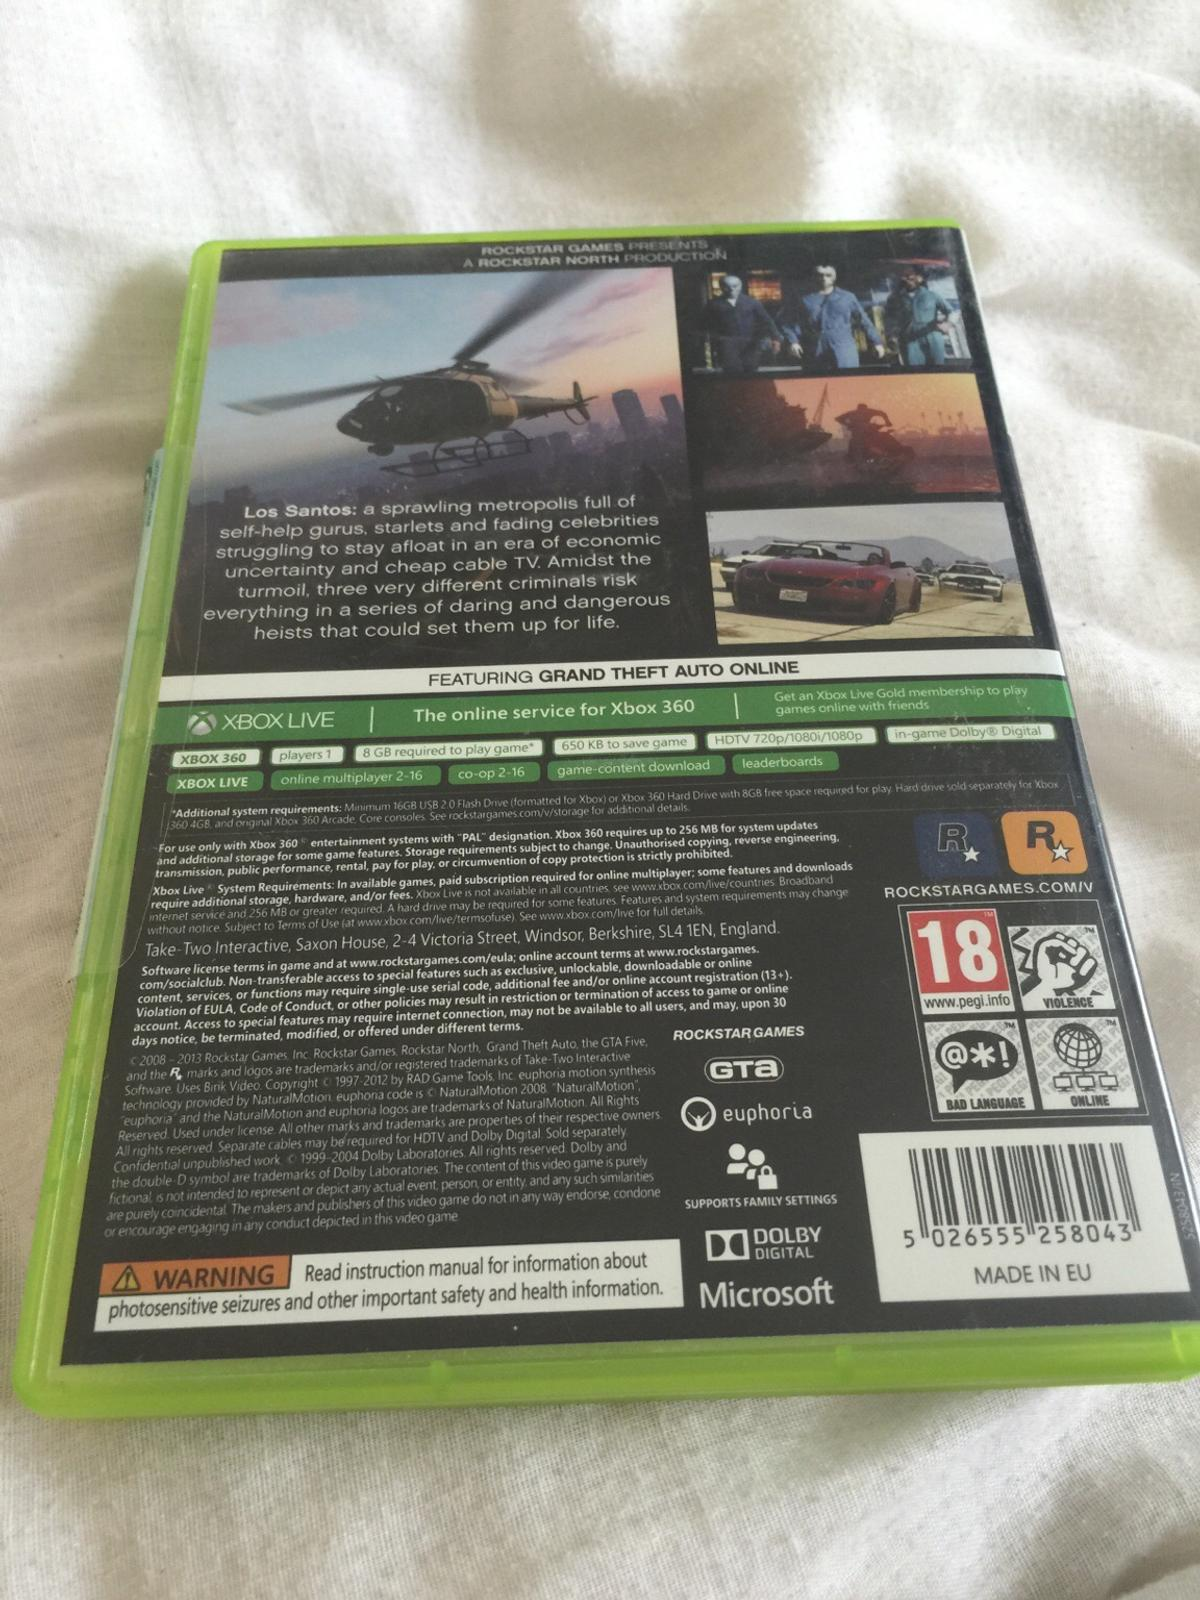 GTA 5 XBOX 360 in UB5 London for £5 00 for sale - Shpock